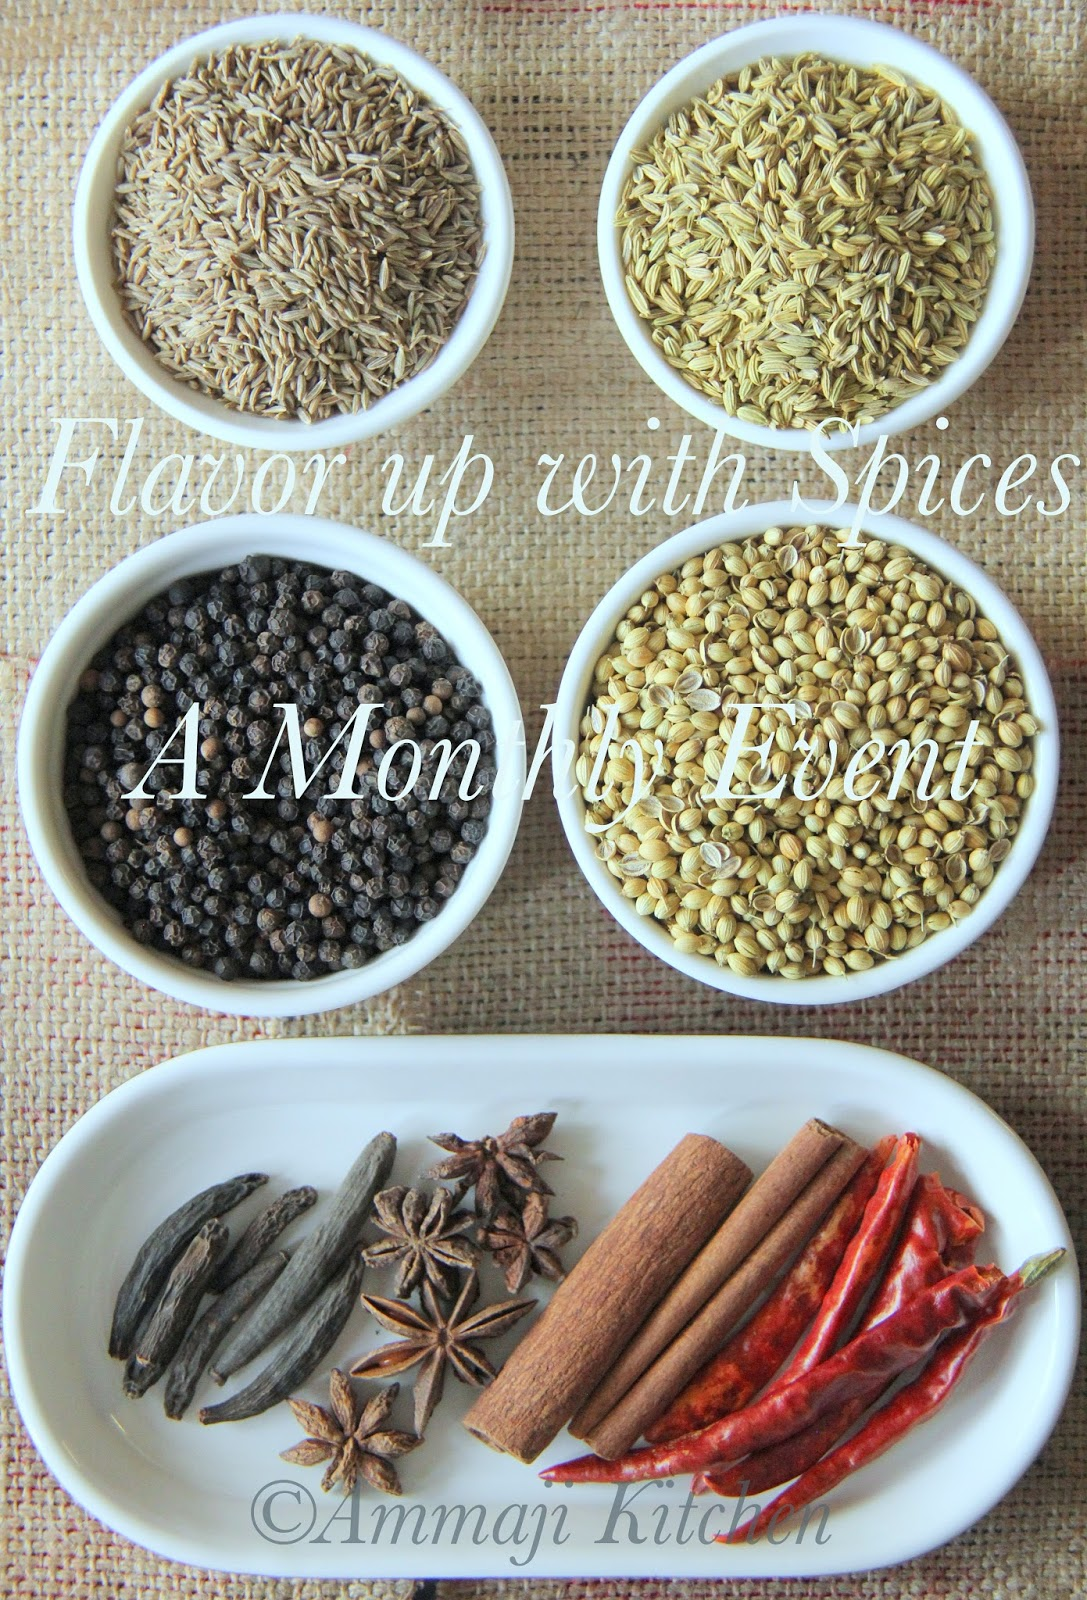 Flavor up with Spices